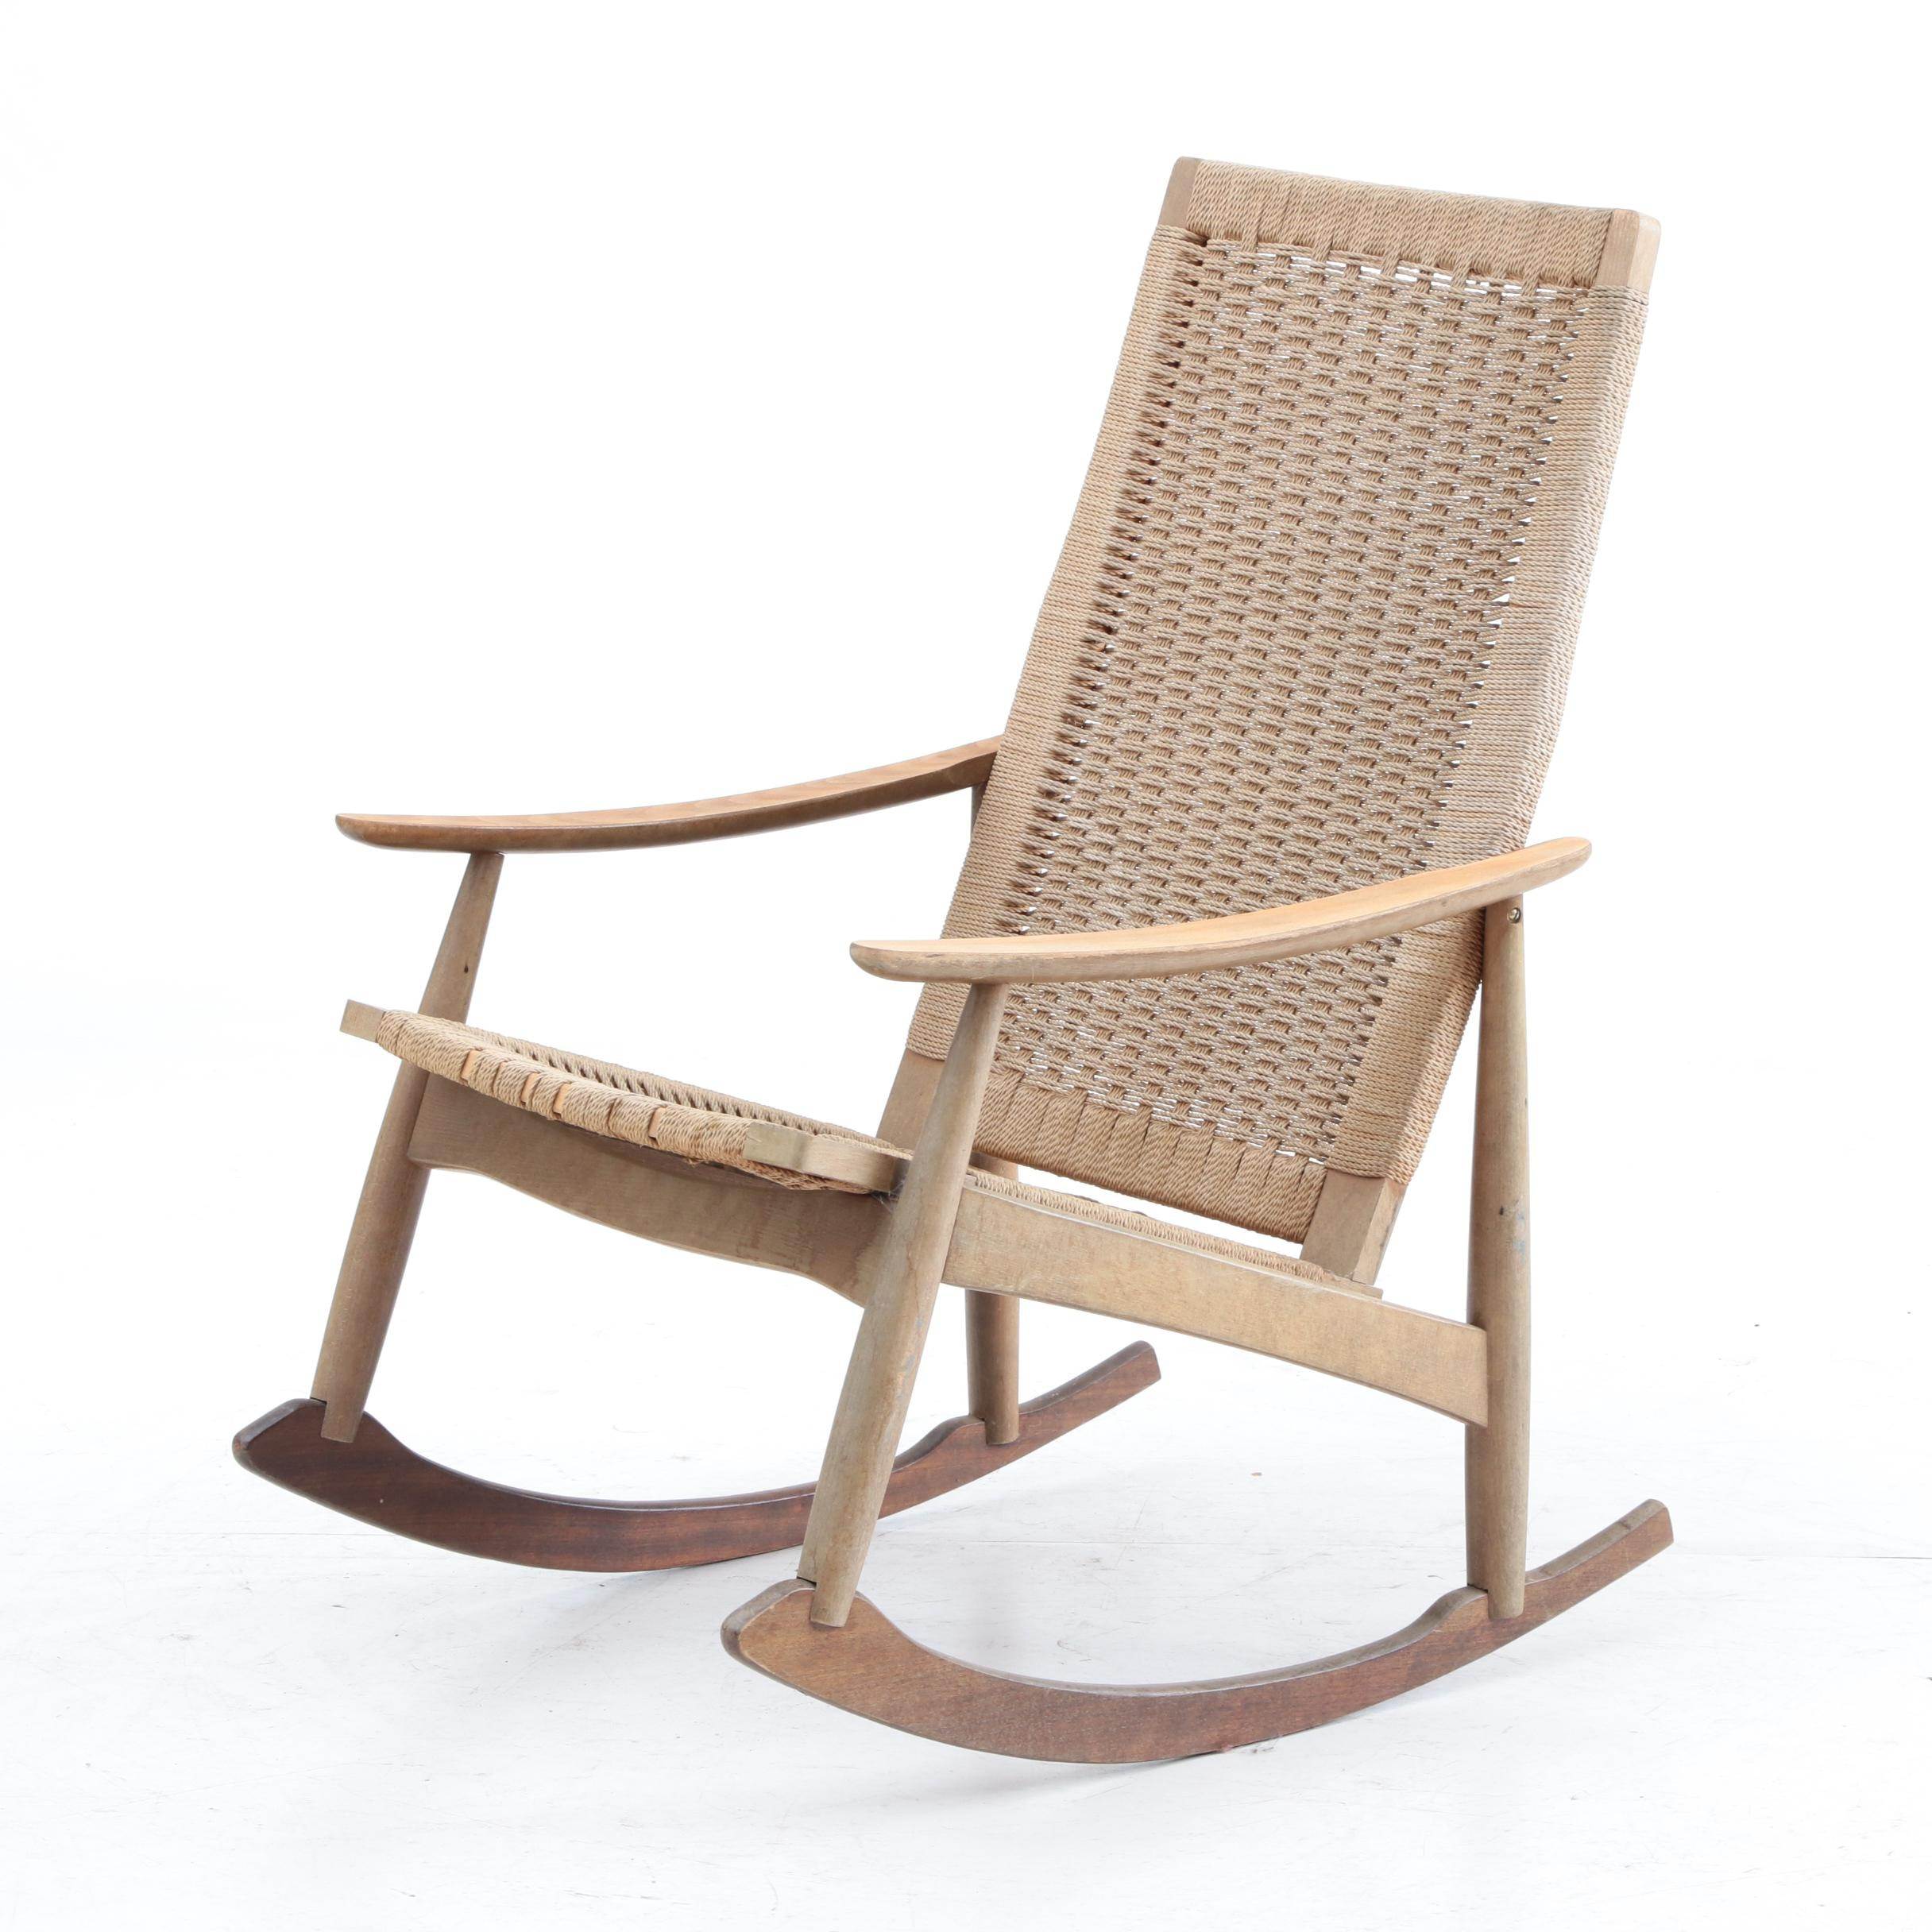 Woven Seagrass Rocking Chair